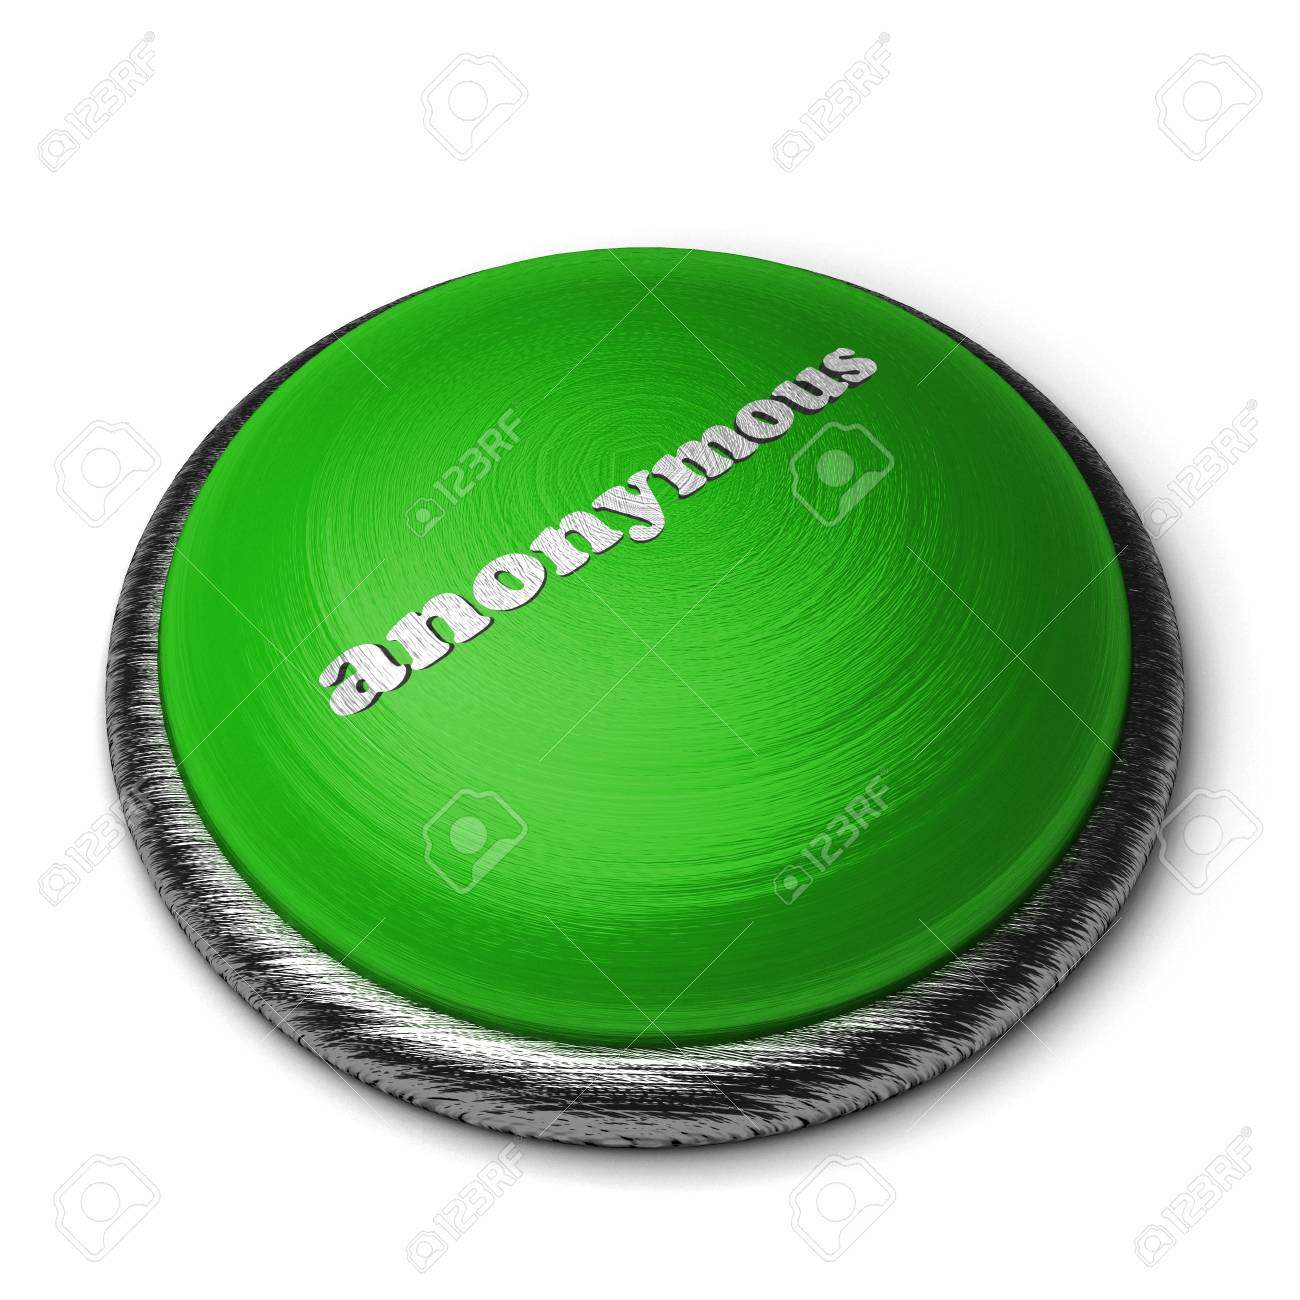 Word on the button Stock Photo - 11823270